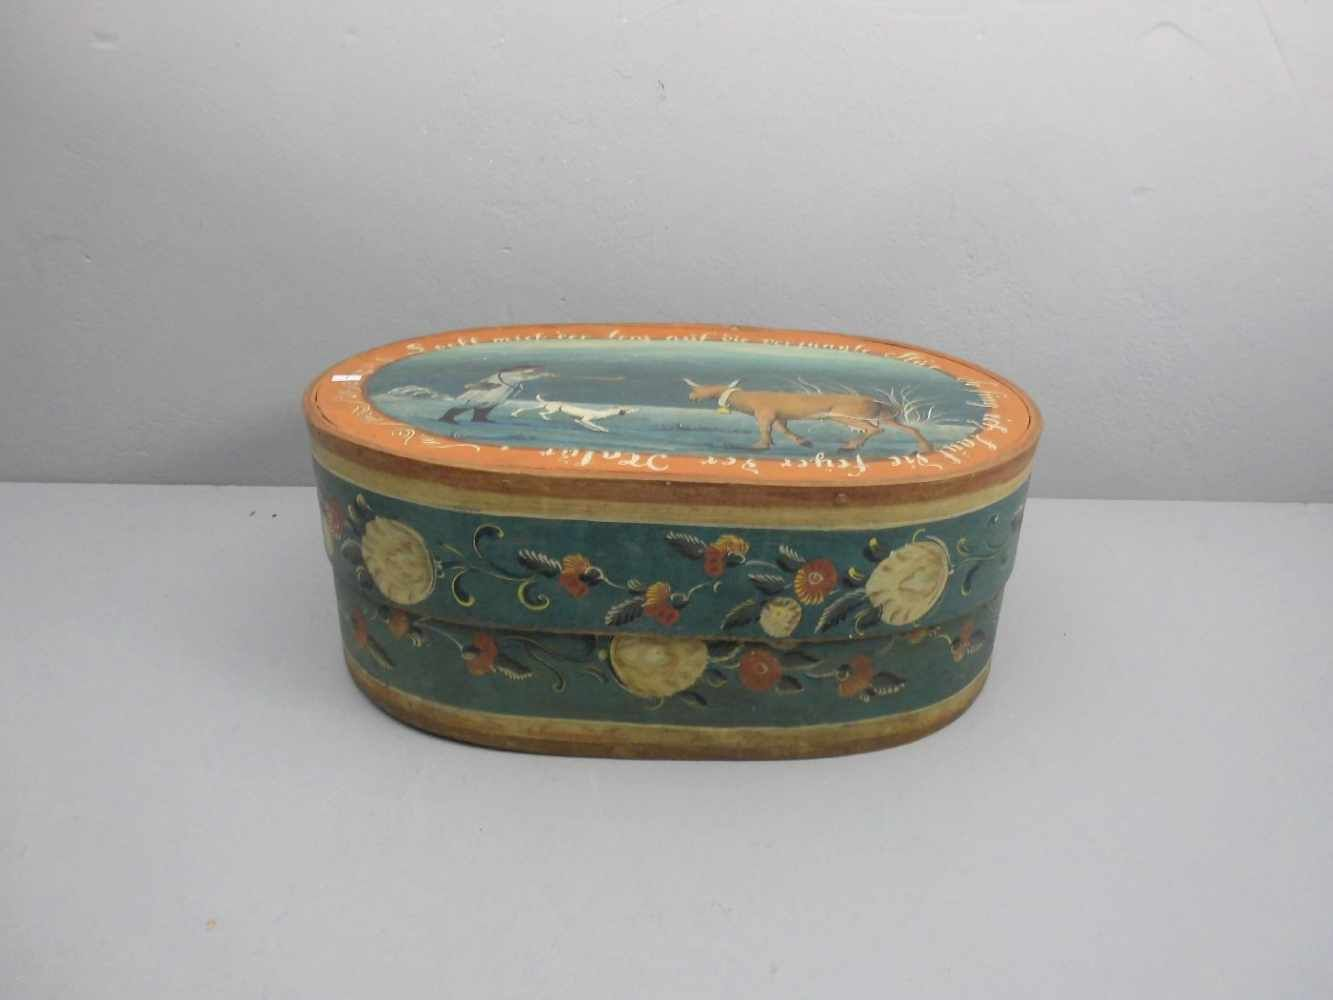 Sale 133: Art, Antiques, Watches, Jewellery & Collectibles